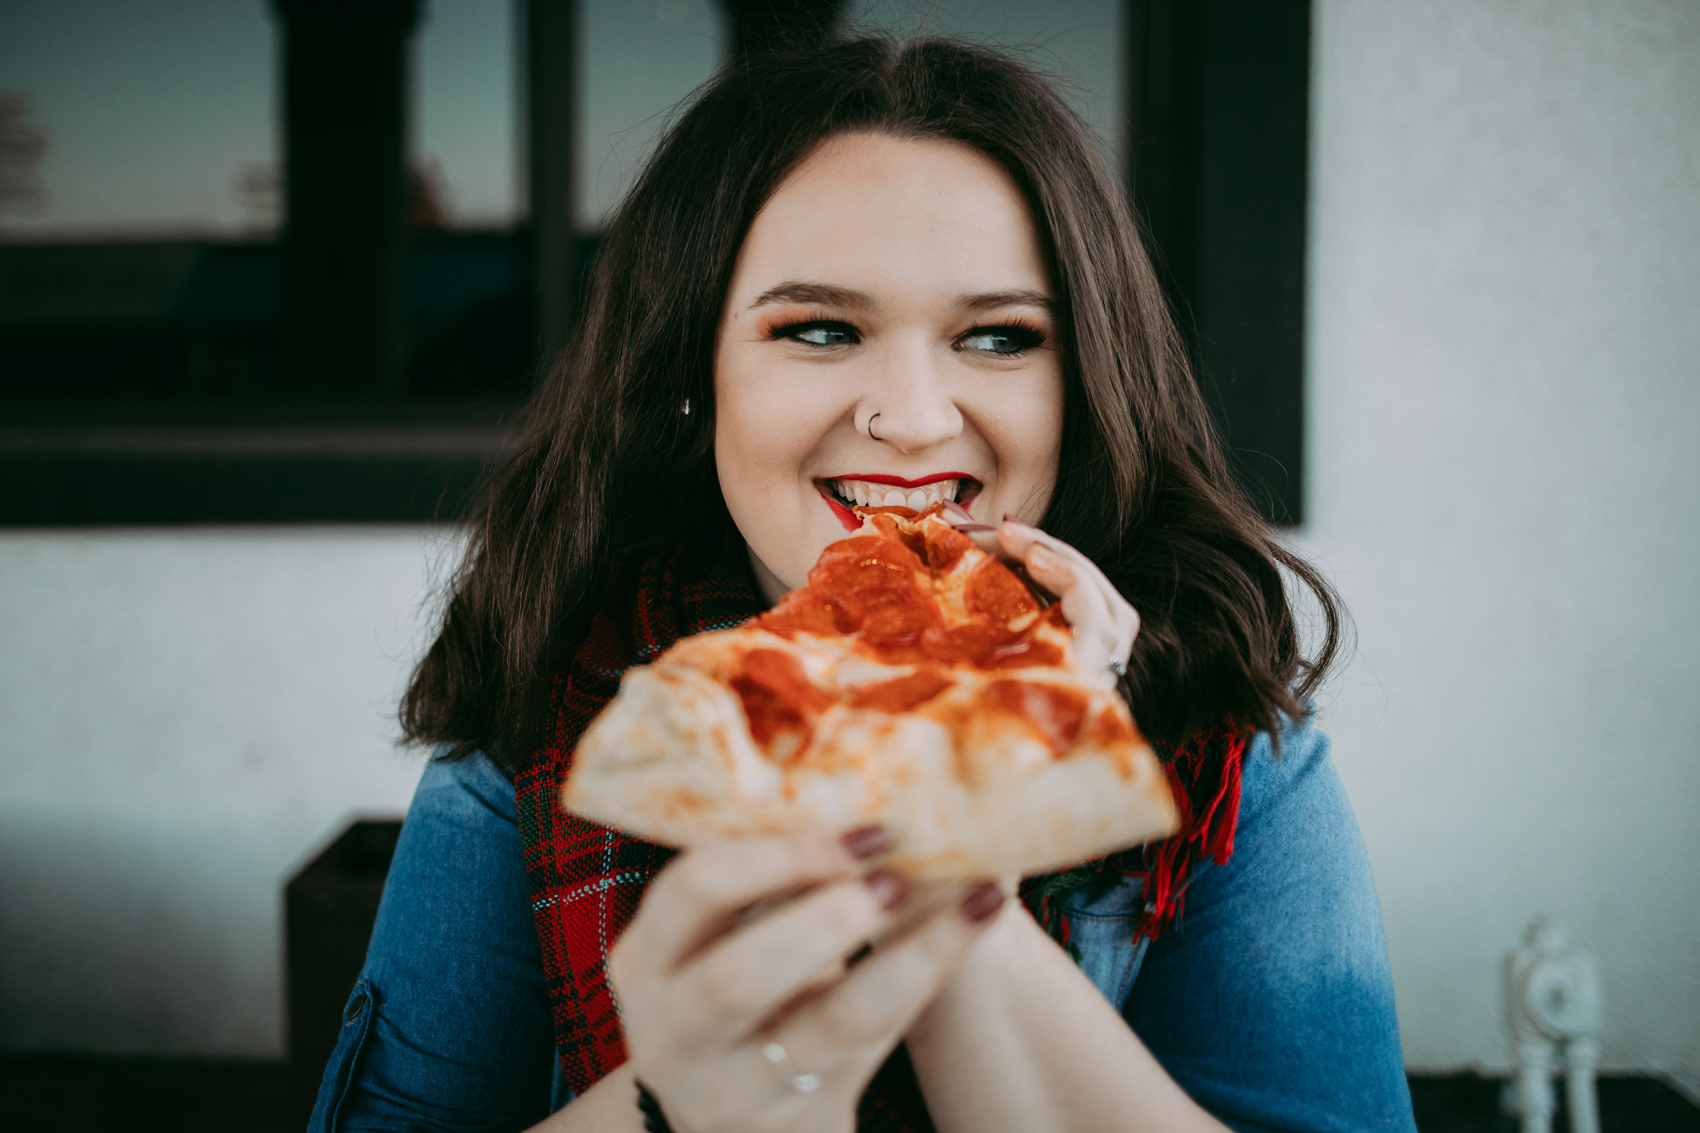 High school senior girl with long dark hair, eating a piece of pizza in the plaza district in Oklahoma City by Amanda Lynn Photography.